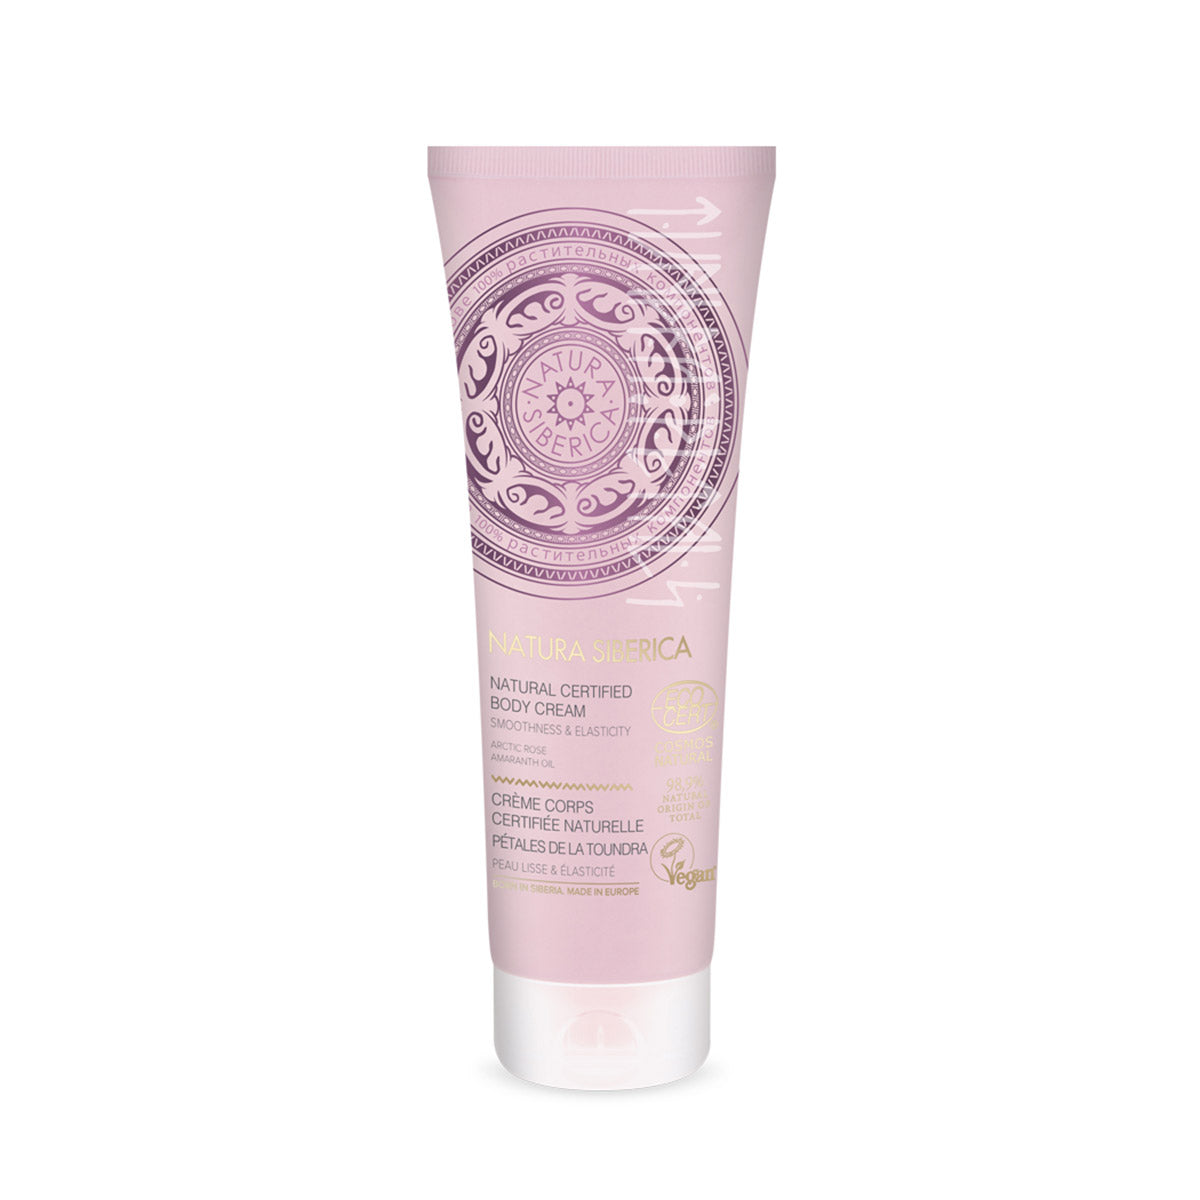 Tundra Petals Natural Certified Body Cream, 200 ml